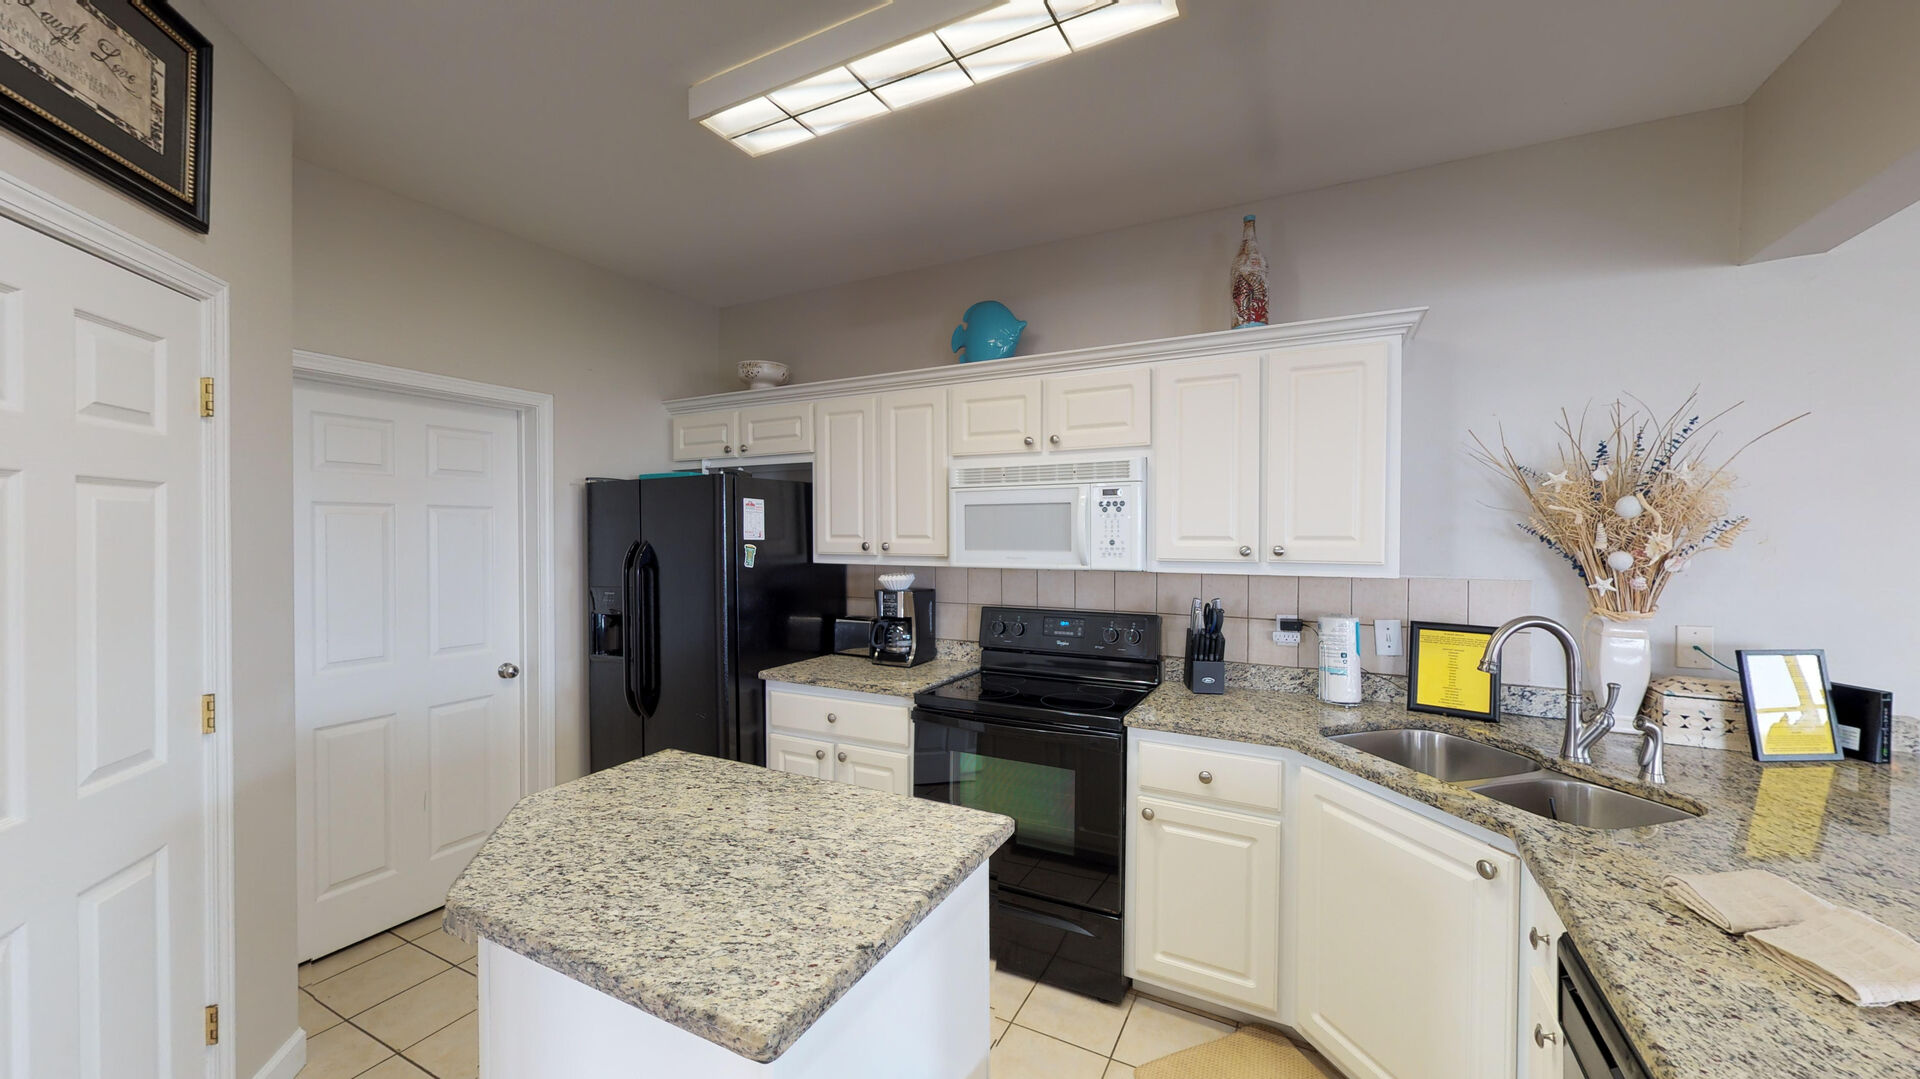 Spacious Kitchen Features Plenty of Counter and Cabinet Space.